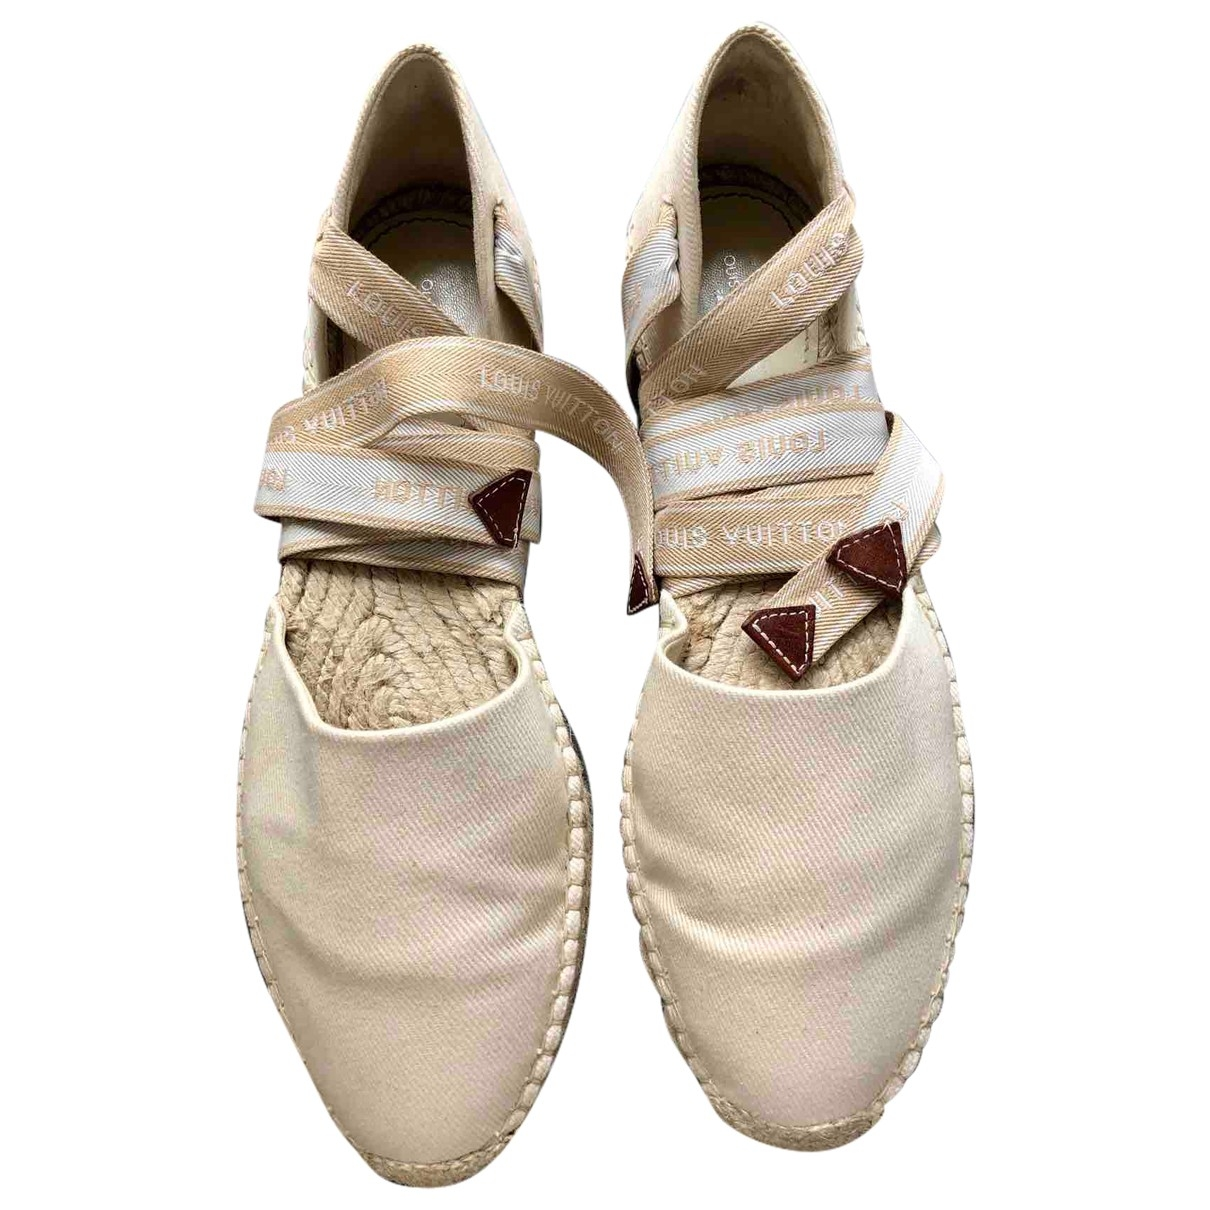 Louis Vuitton \N Beige Cloth Espadrilles for Women 38.5 EU